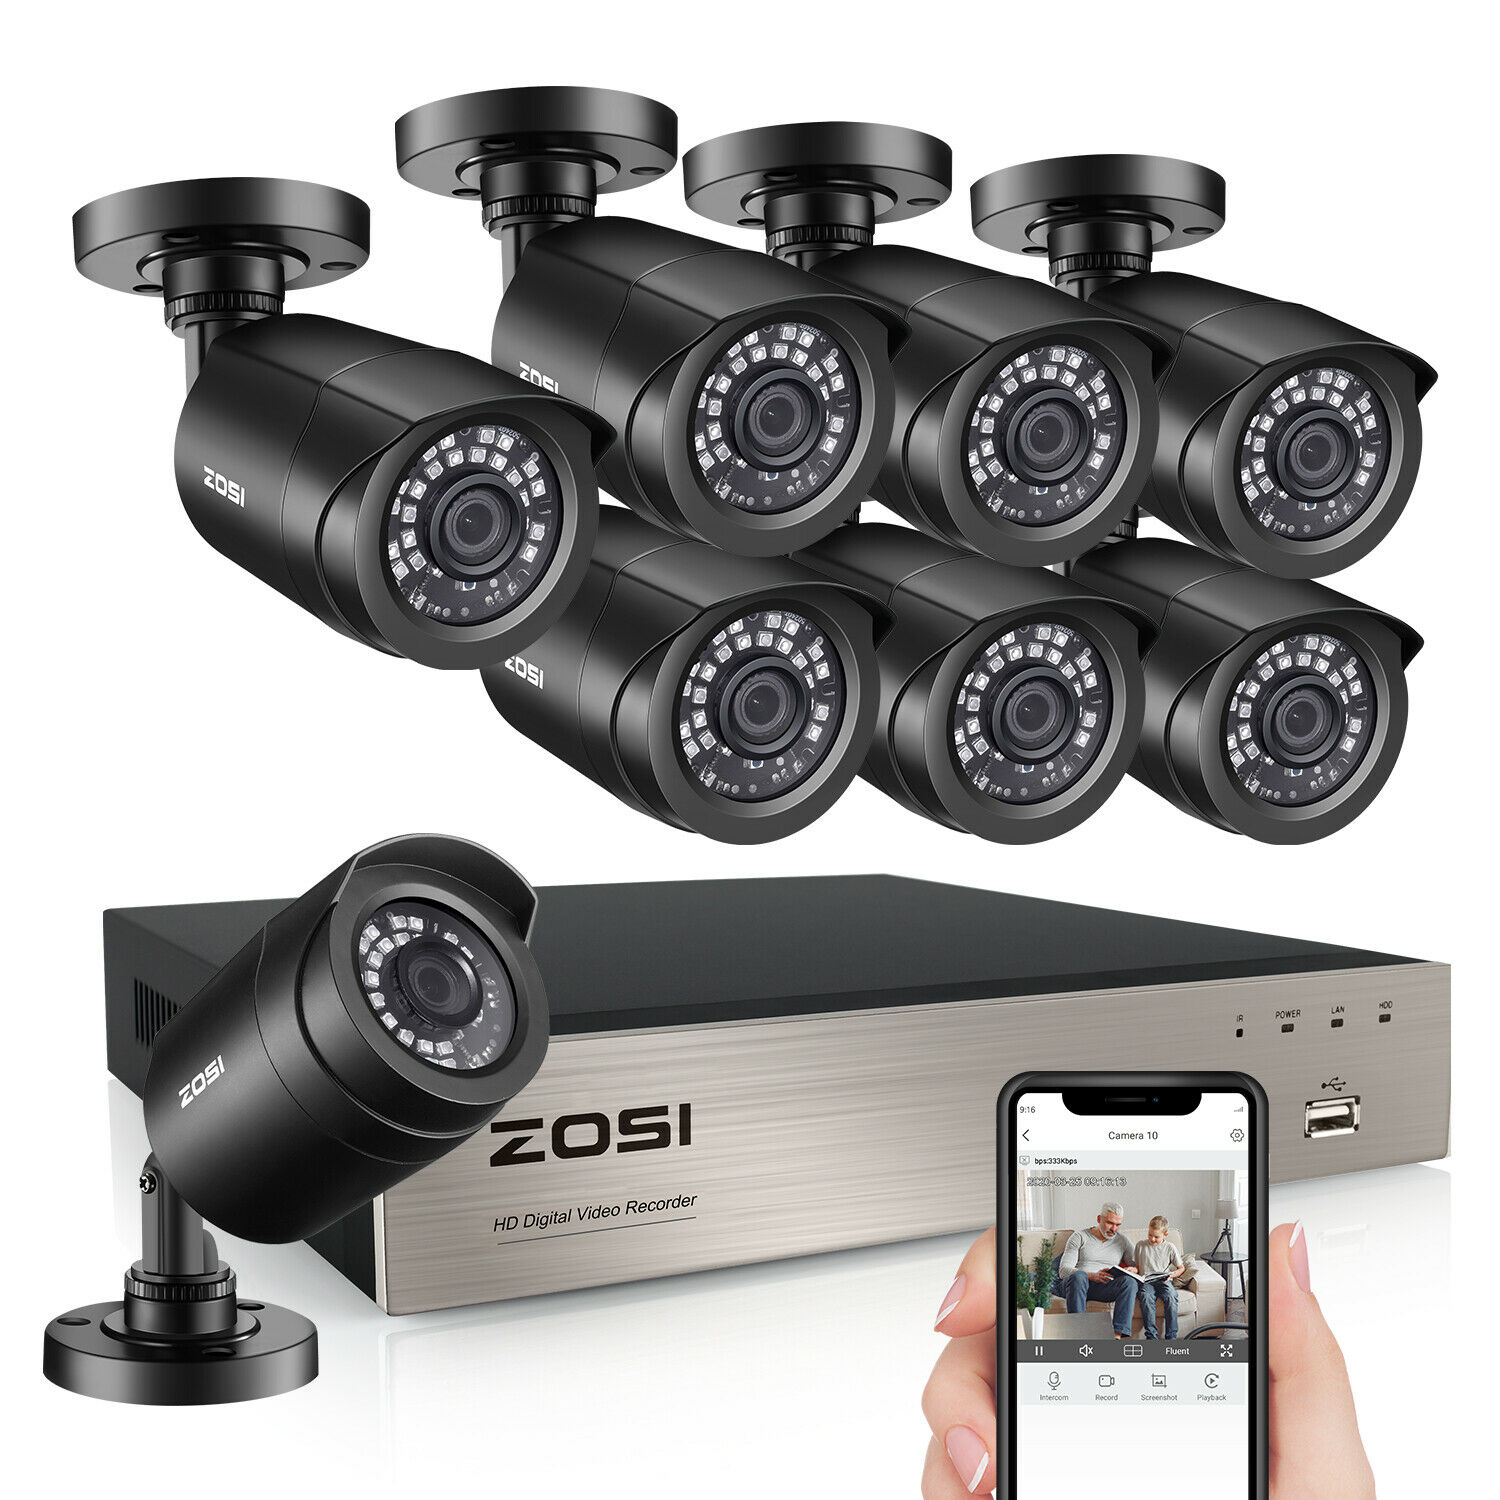 ZOSI 8CH 5MP Lite DVR 1080P Outdoor CCTV Security Camera System Kit Night Vision. Buy it now for 169.99